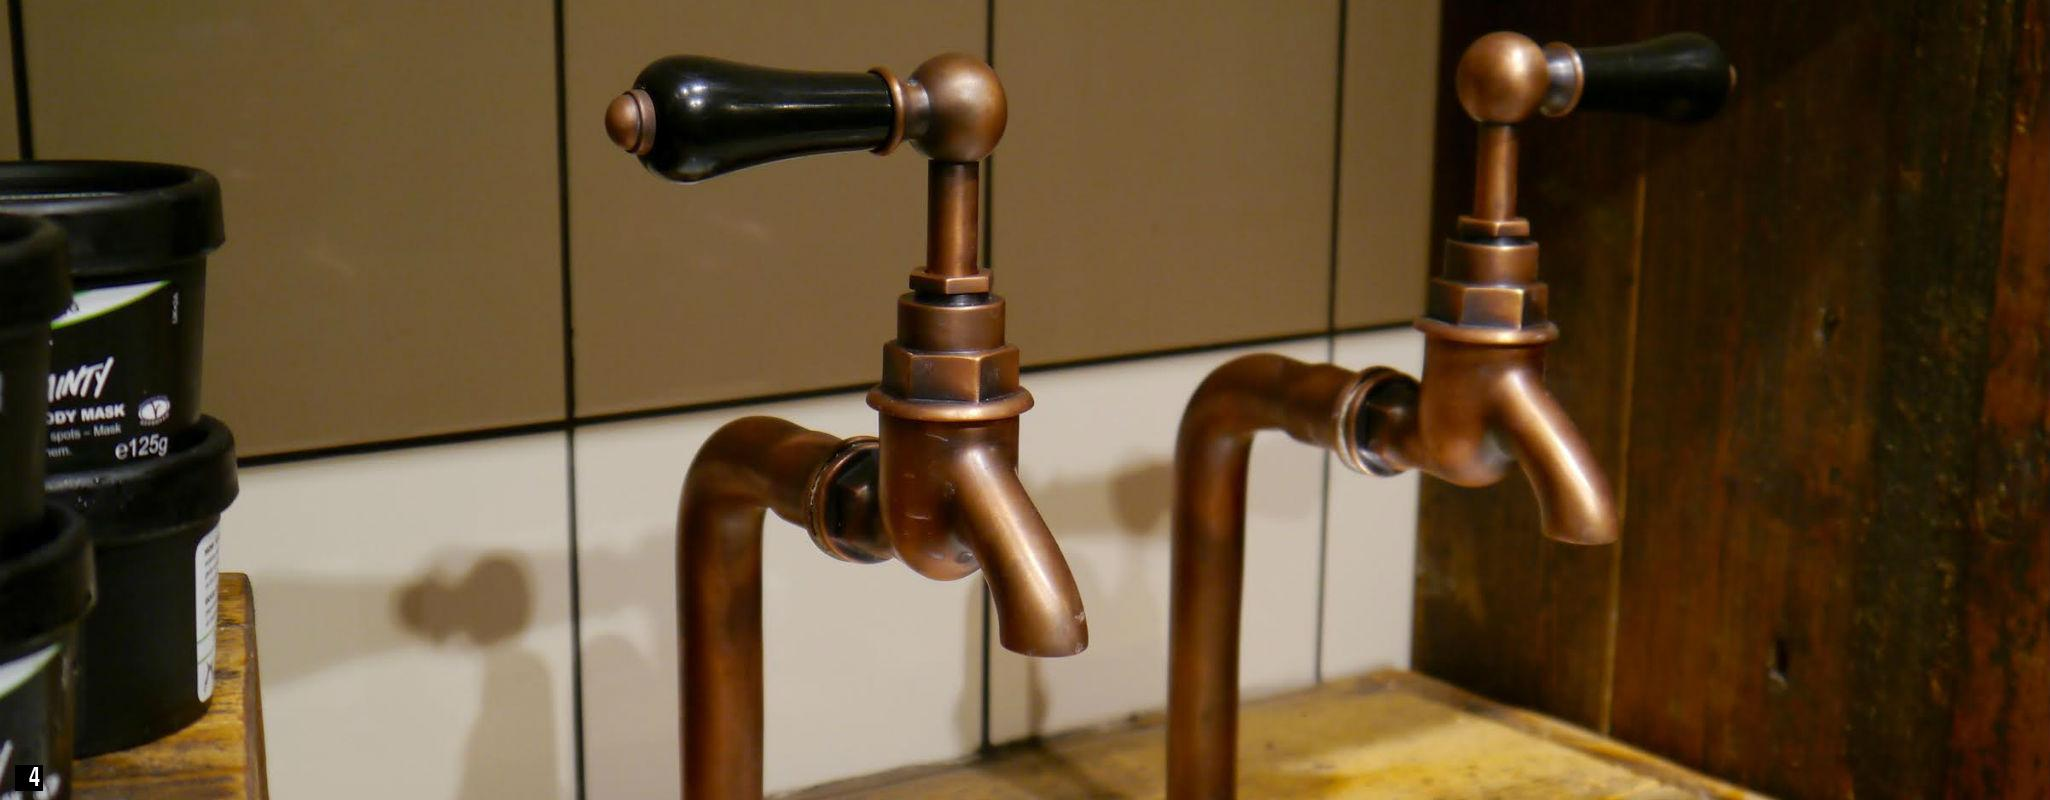 Bib Taps , Kitchen Bib Taps , Wall Bib Taps , Weathered Copper Bib Taps ,  Copper Bib Taps